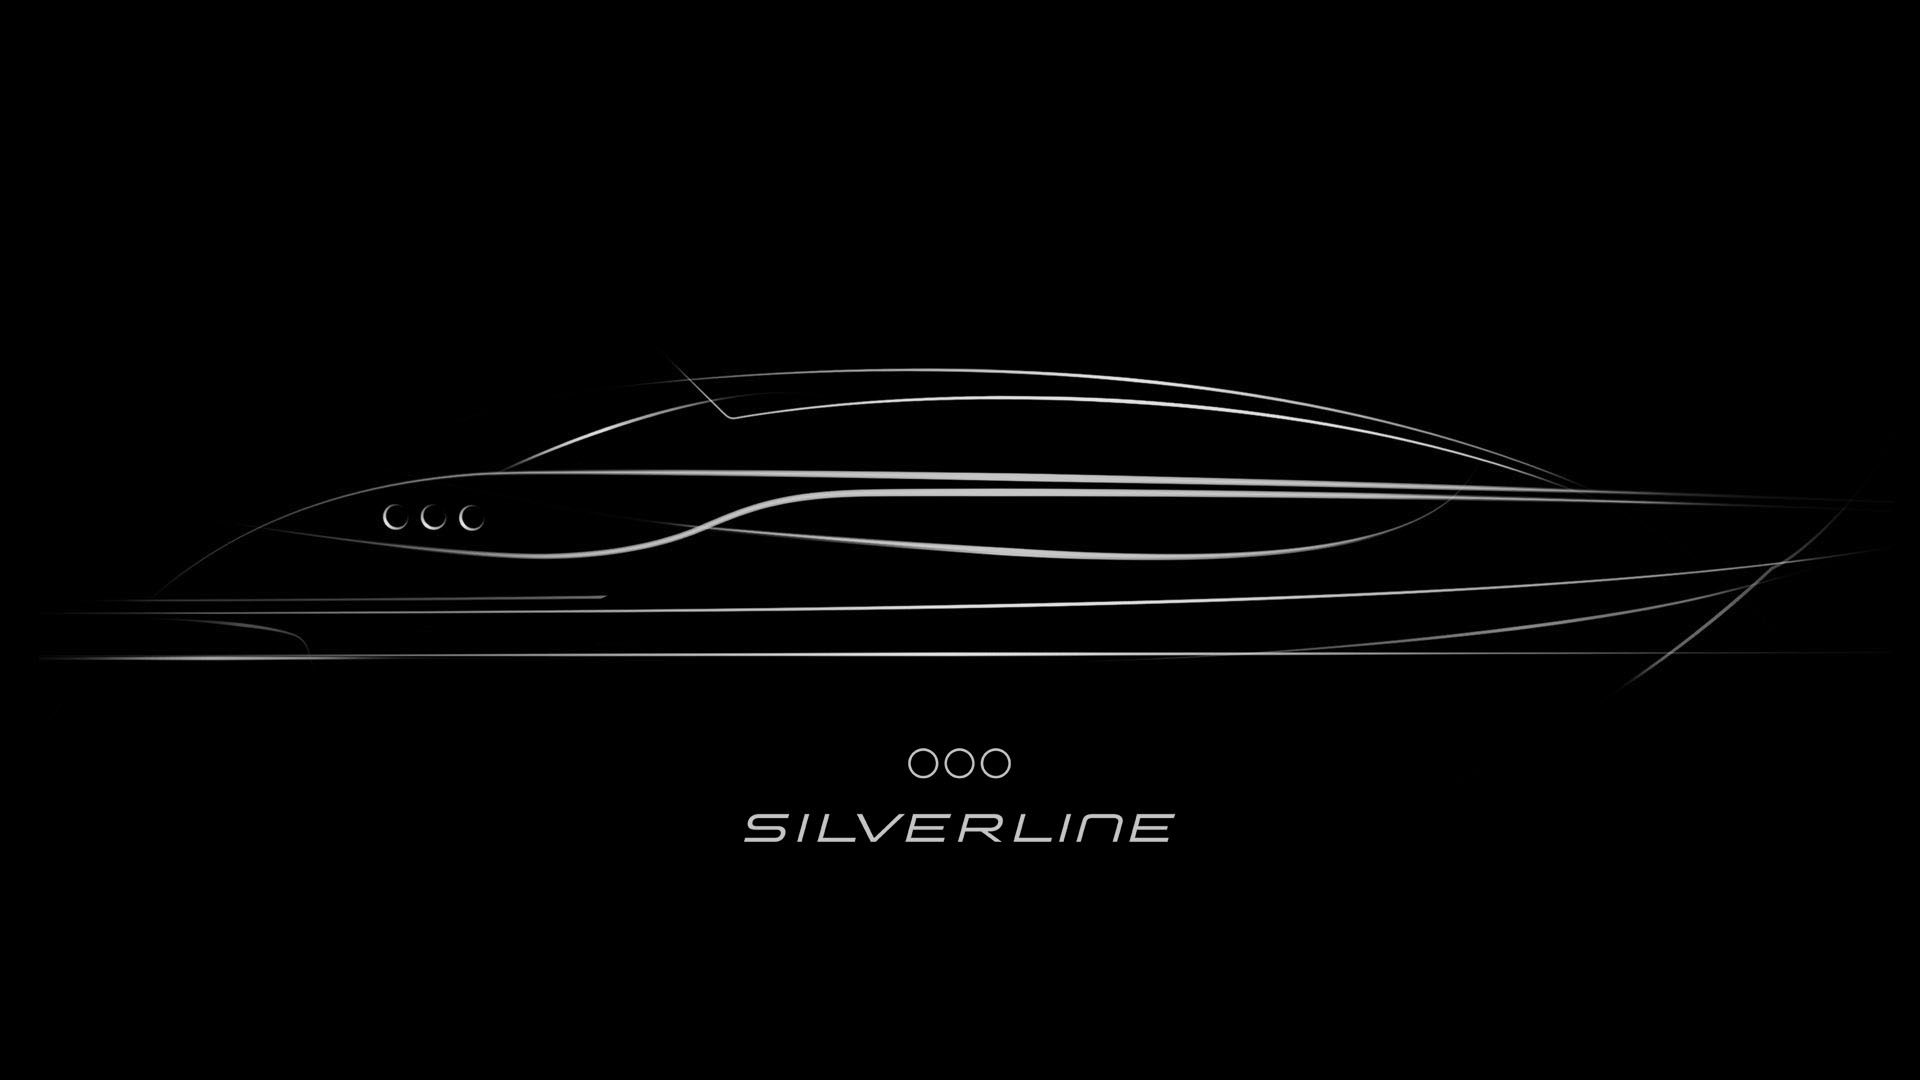 Sketch of a Luxurious Limousine tender yacht design by H.Bekradi